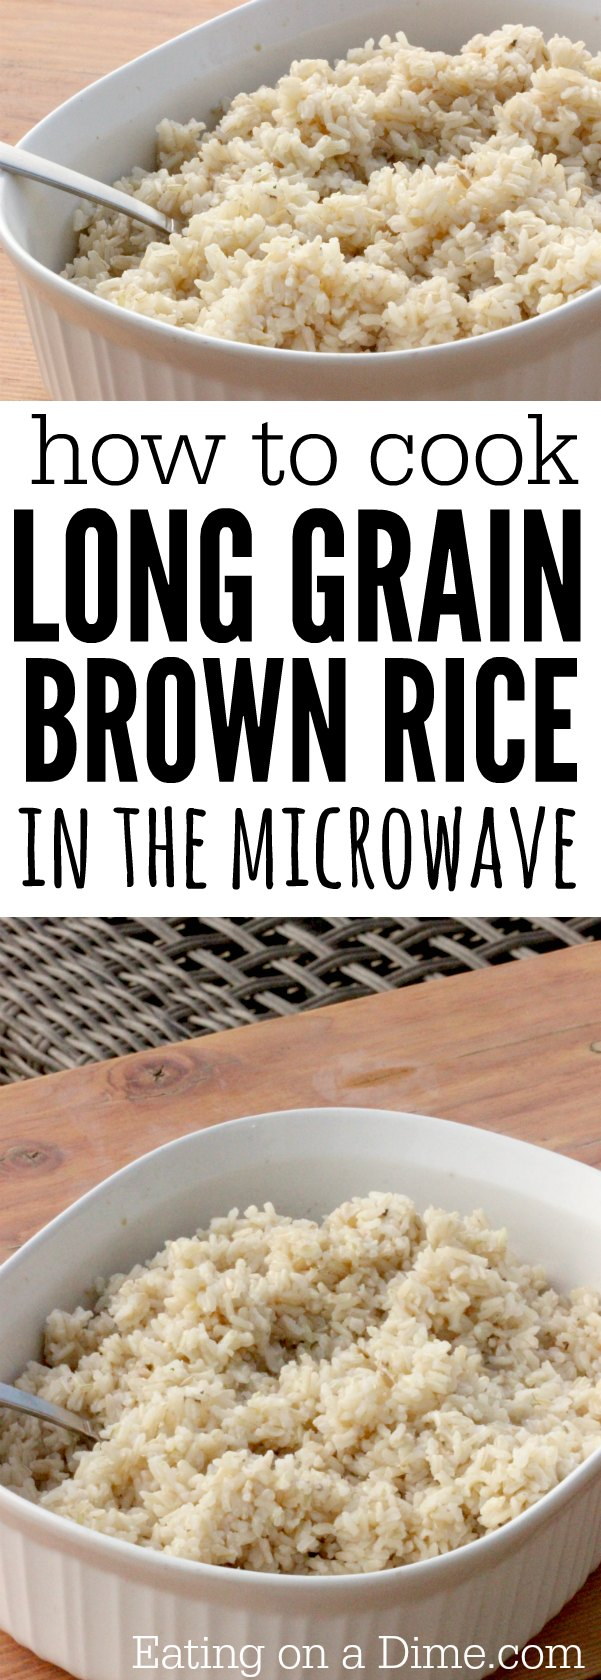 Do You Think You Will Try This Easy Way Of Cooking Brown Rice?